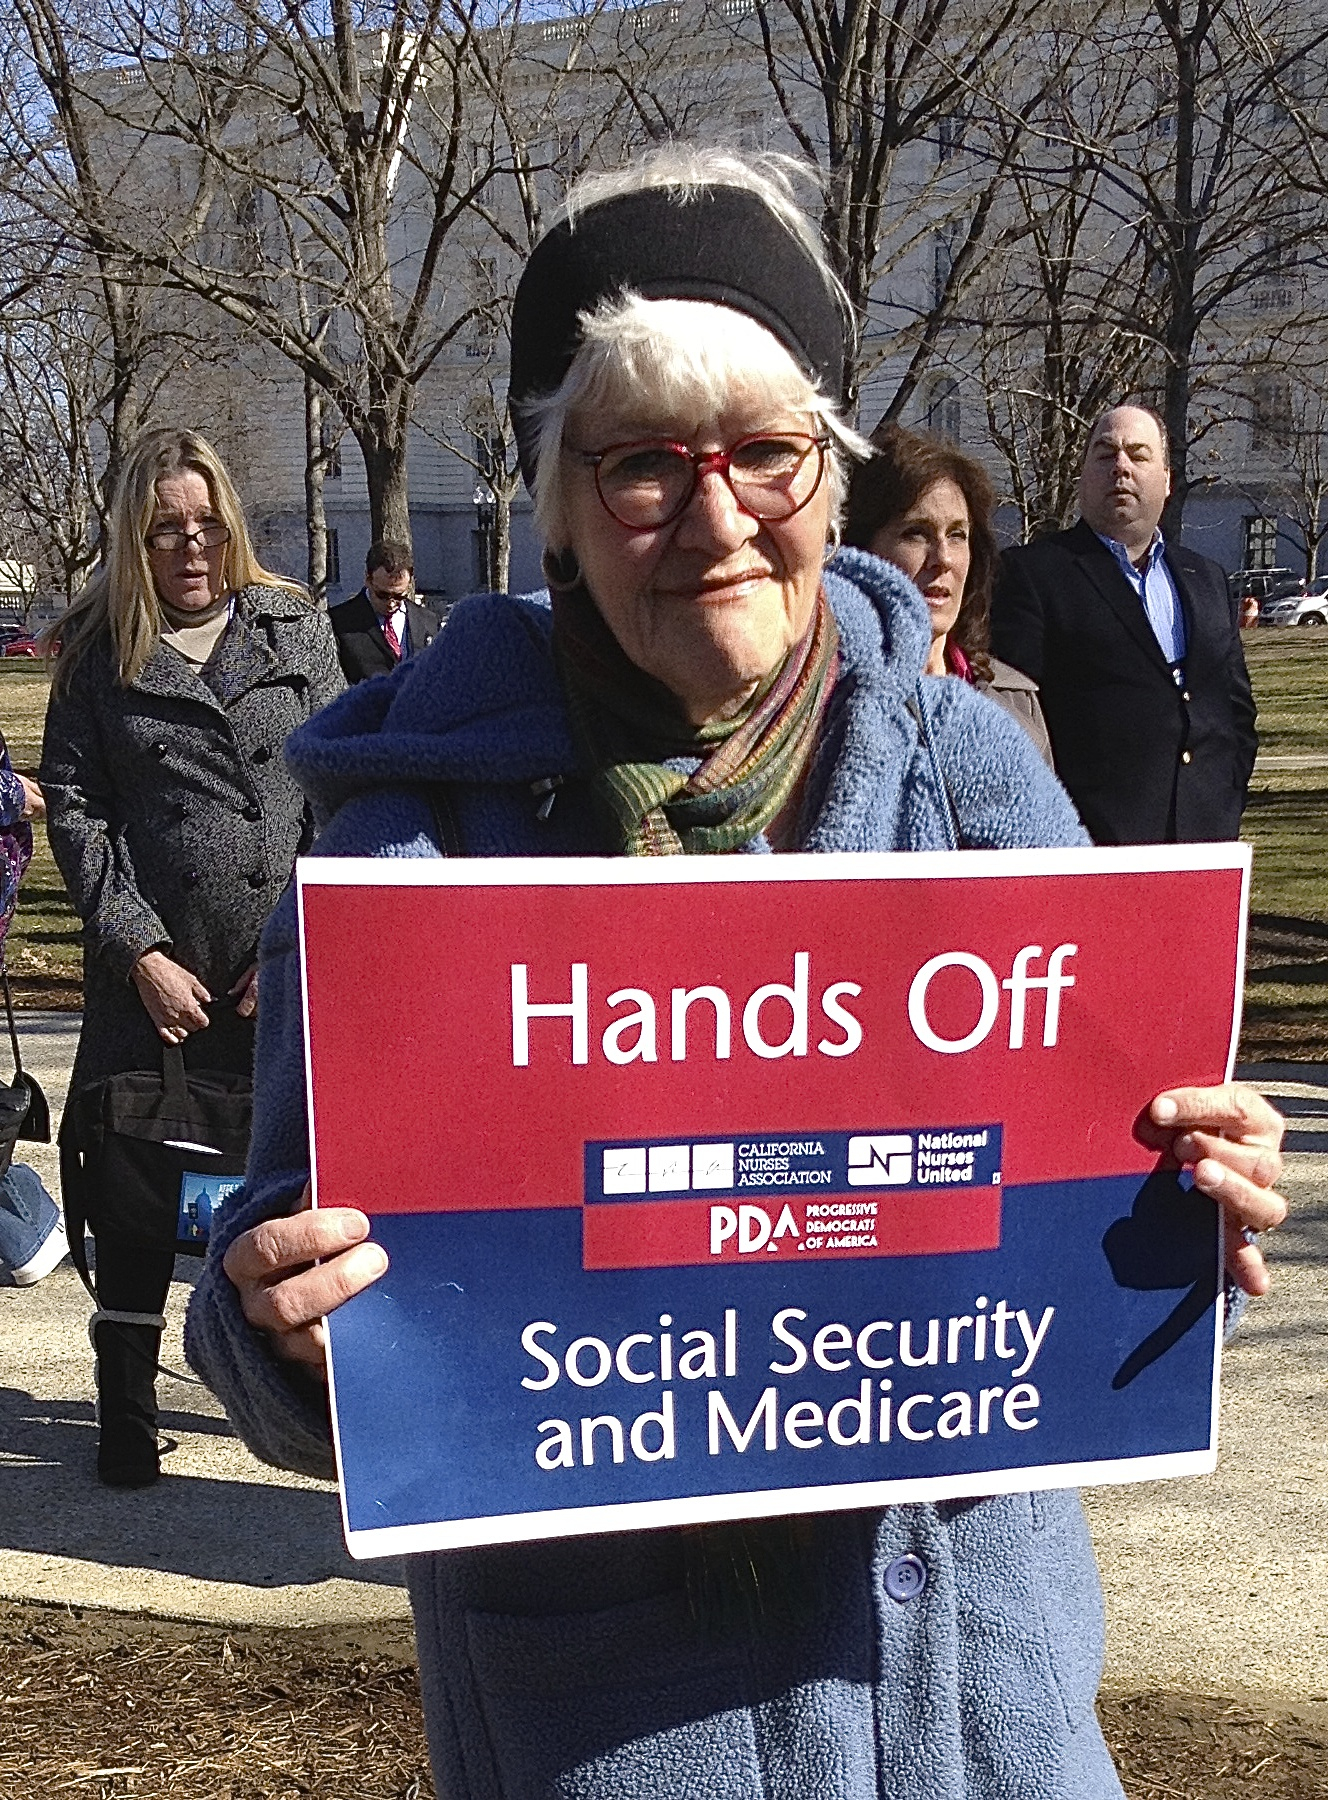 """social security debate essay Financial wellness essay collection 2017 call for essays  good basis for  forecasting their future social security  macguineas, """"statement by maya  macguineas on vice presidential debate,"""" committee for a responsible federal  budget."""